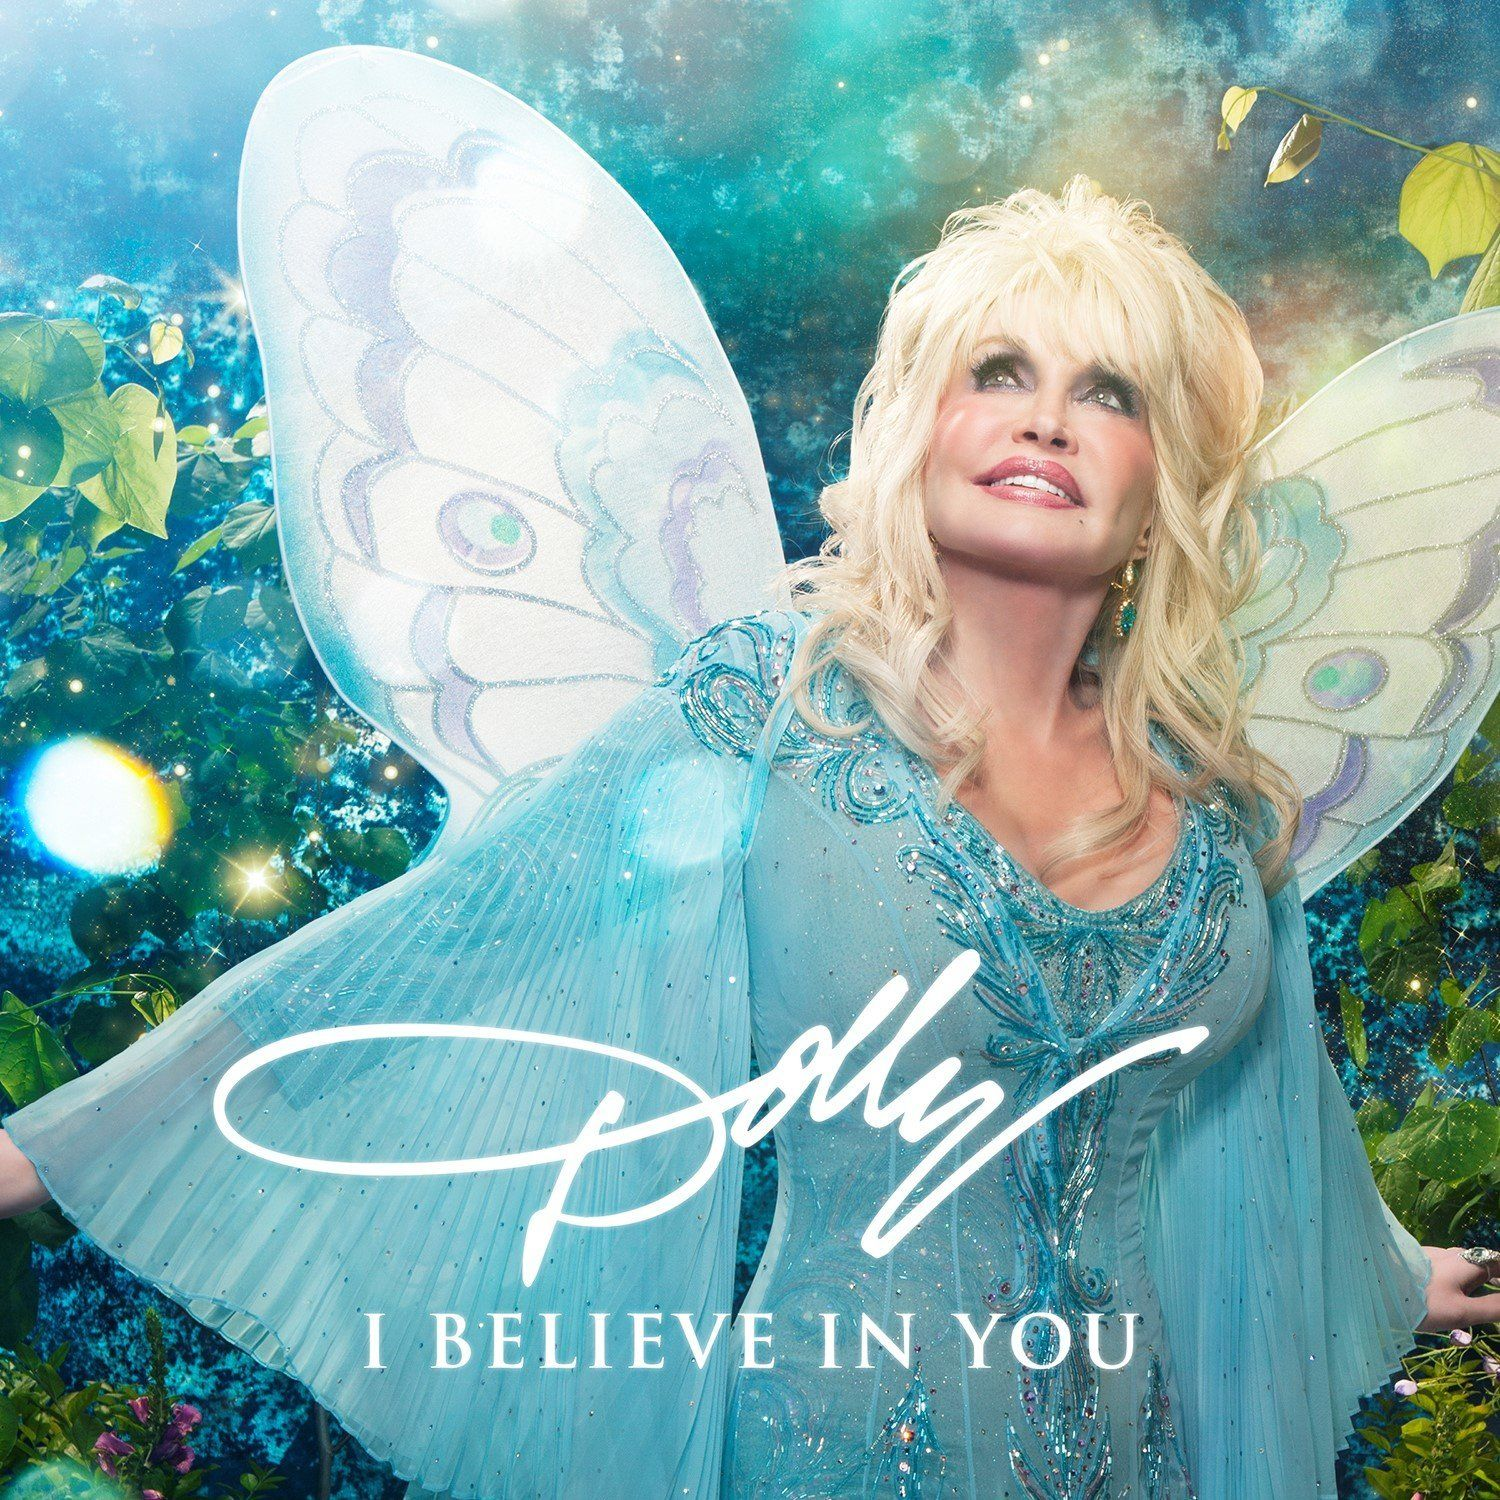 Dolly Parton to Release First Children's Album